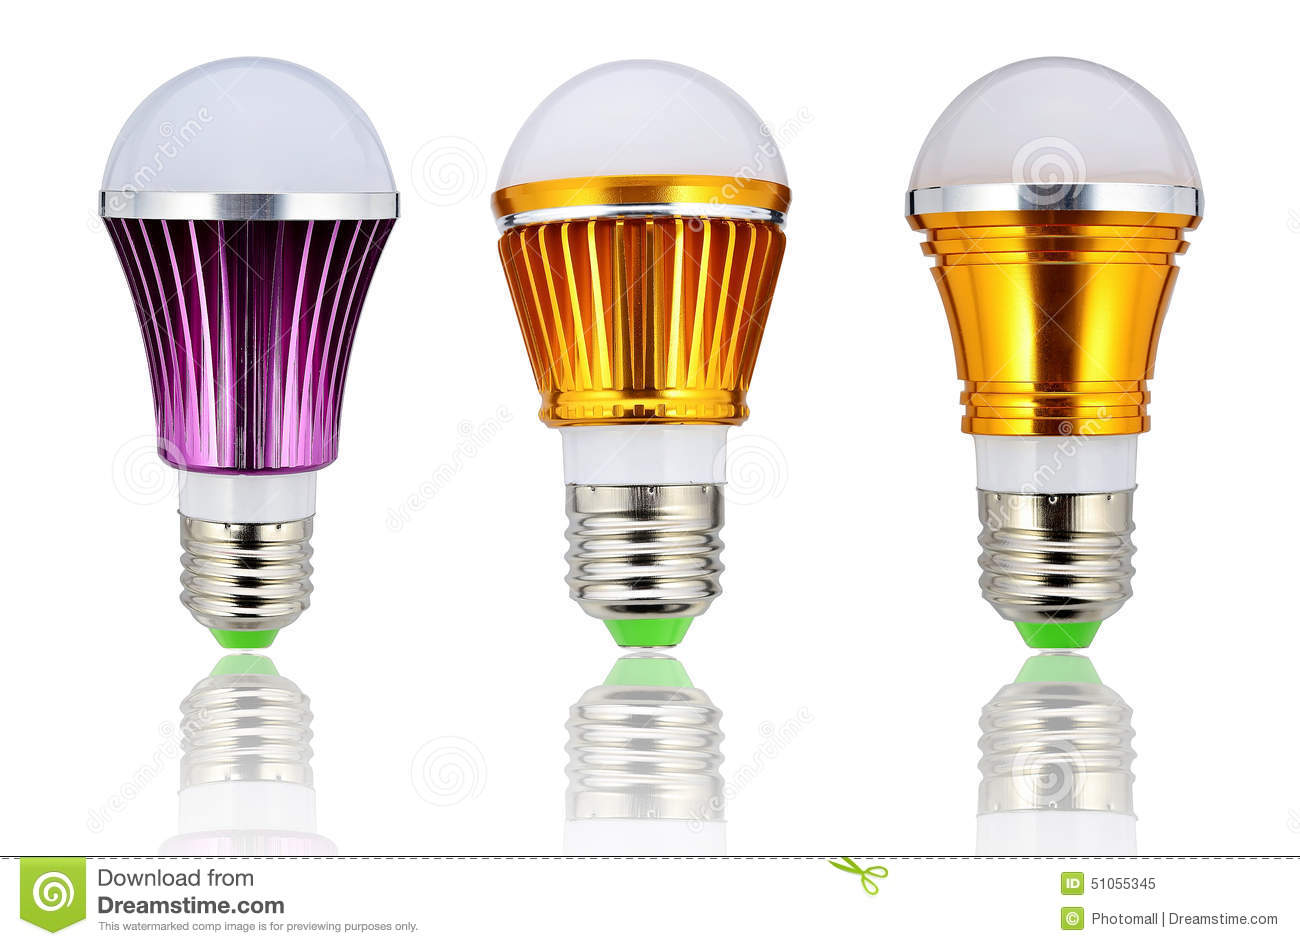 New Type Led Lamp Bulb Or Energy Saving Led Light Bulb Stock Photo Image 51055345